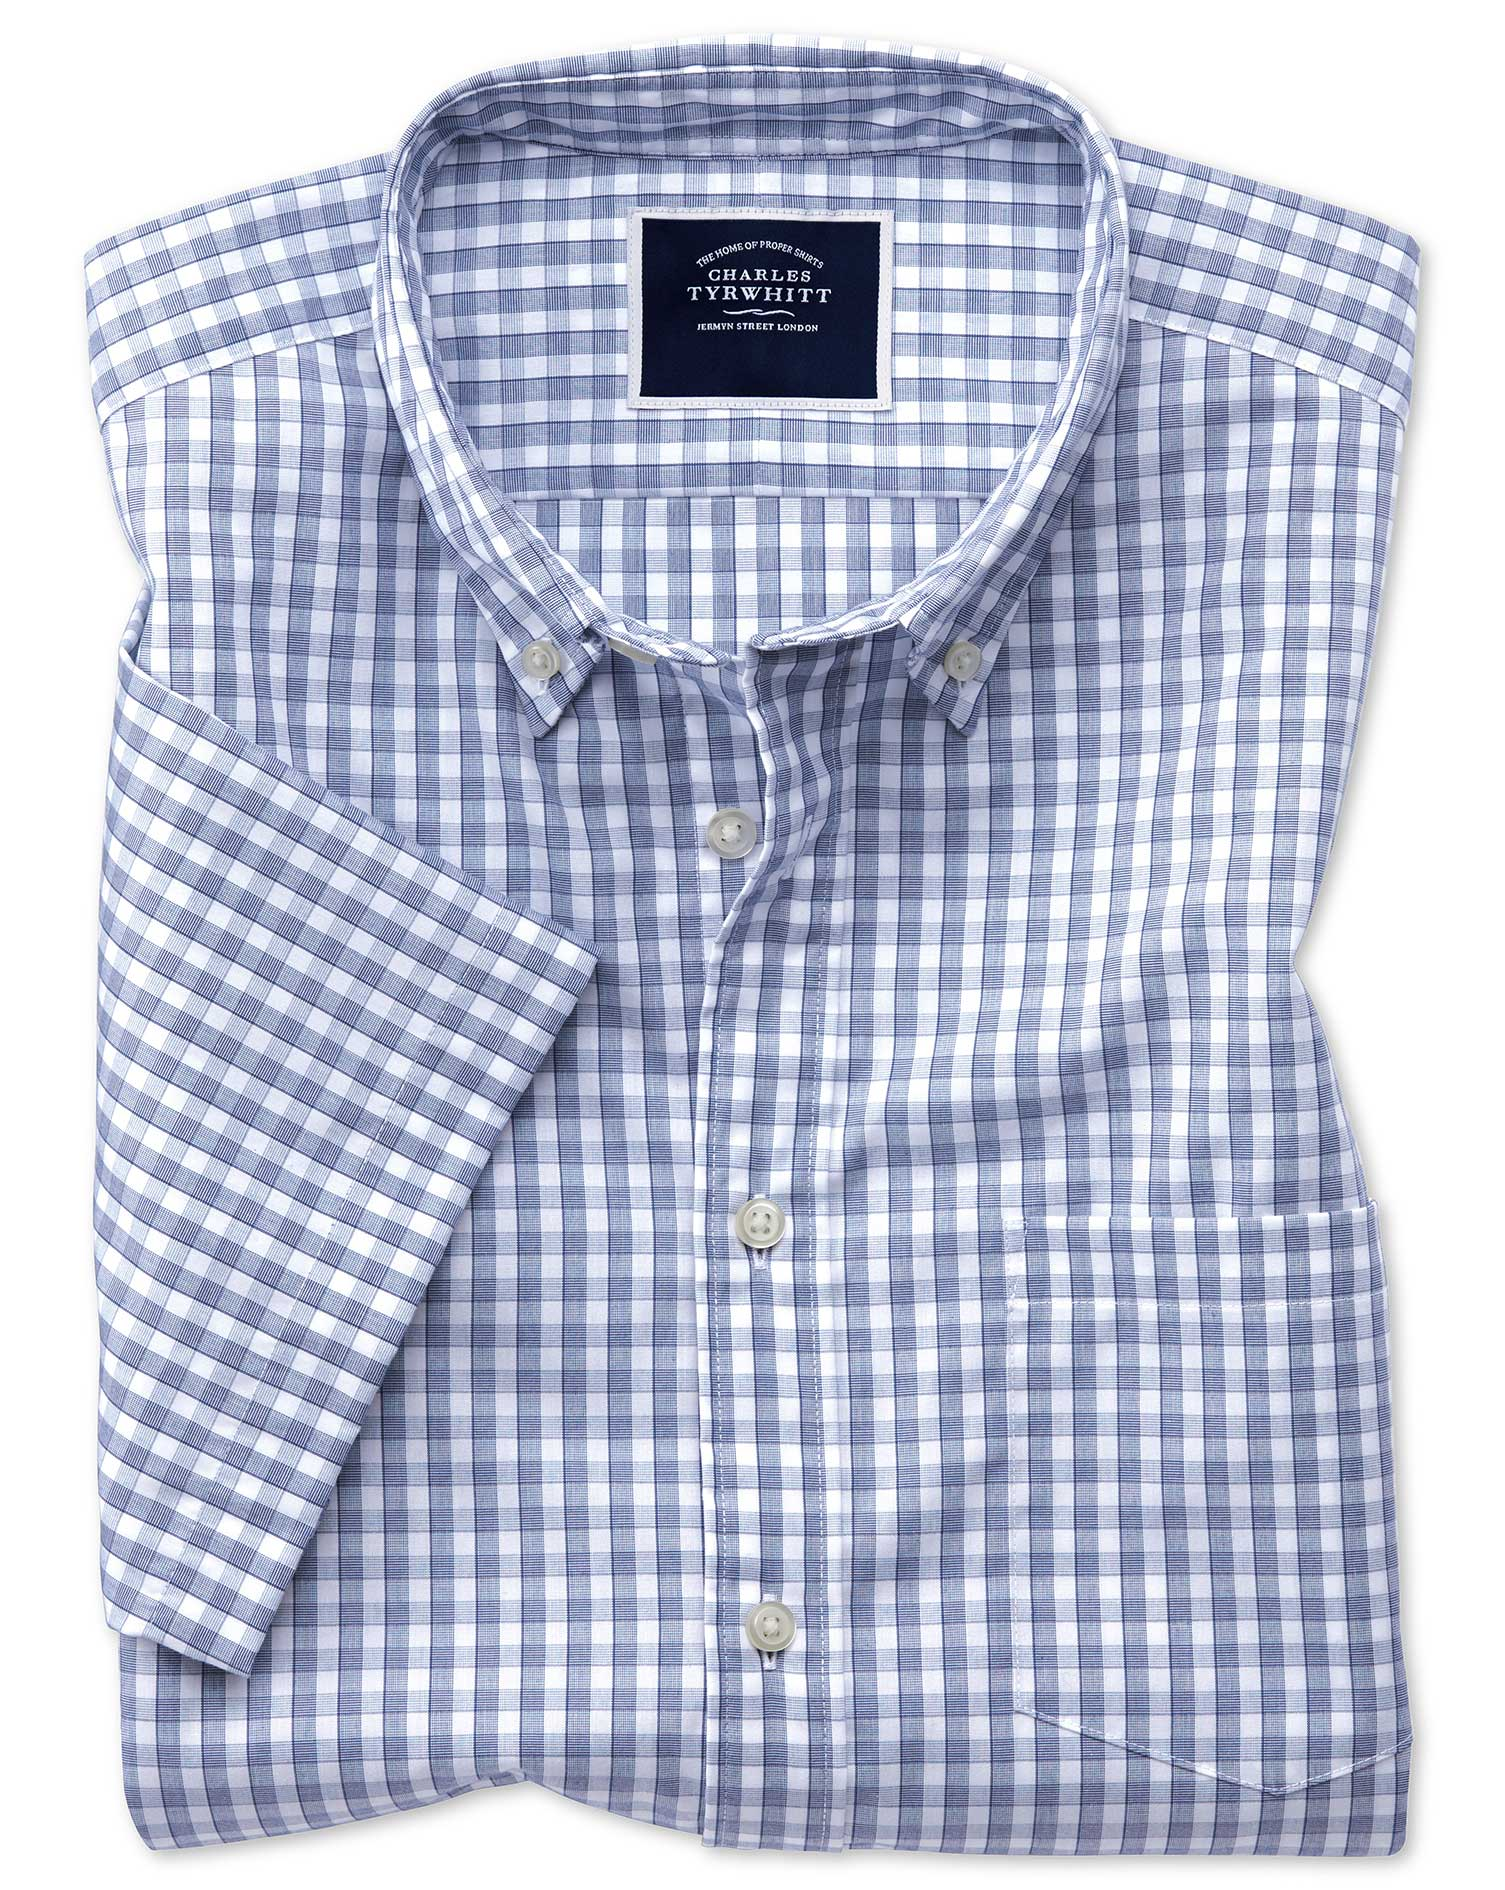 Slim Fit Navy Short Sleeve Gingham Soft Washed Non-Iron Tyrwhitt Cool Cotton Shirt Single Cuff Size